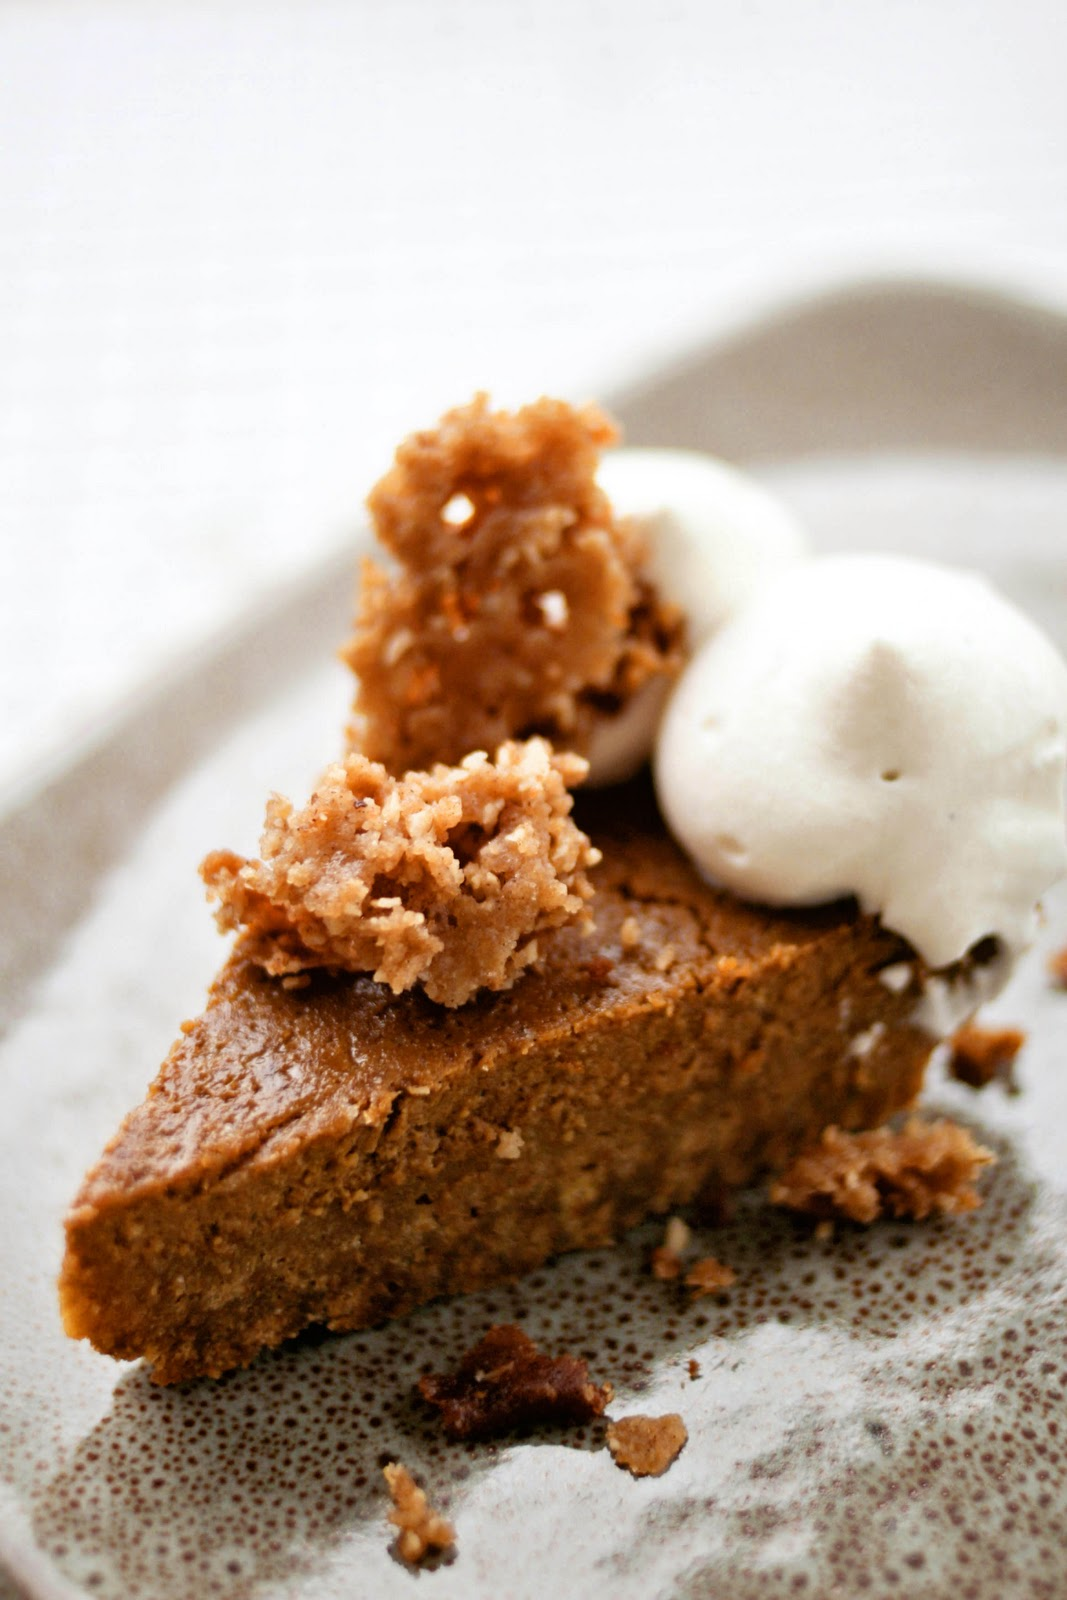 ... : Pumpkin Pie with Cinnamon Crunch and Bourbon-Maple Whipped Cream